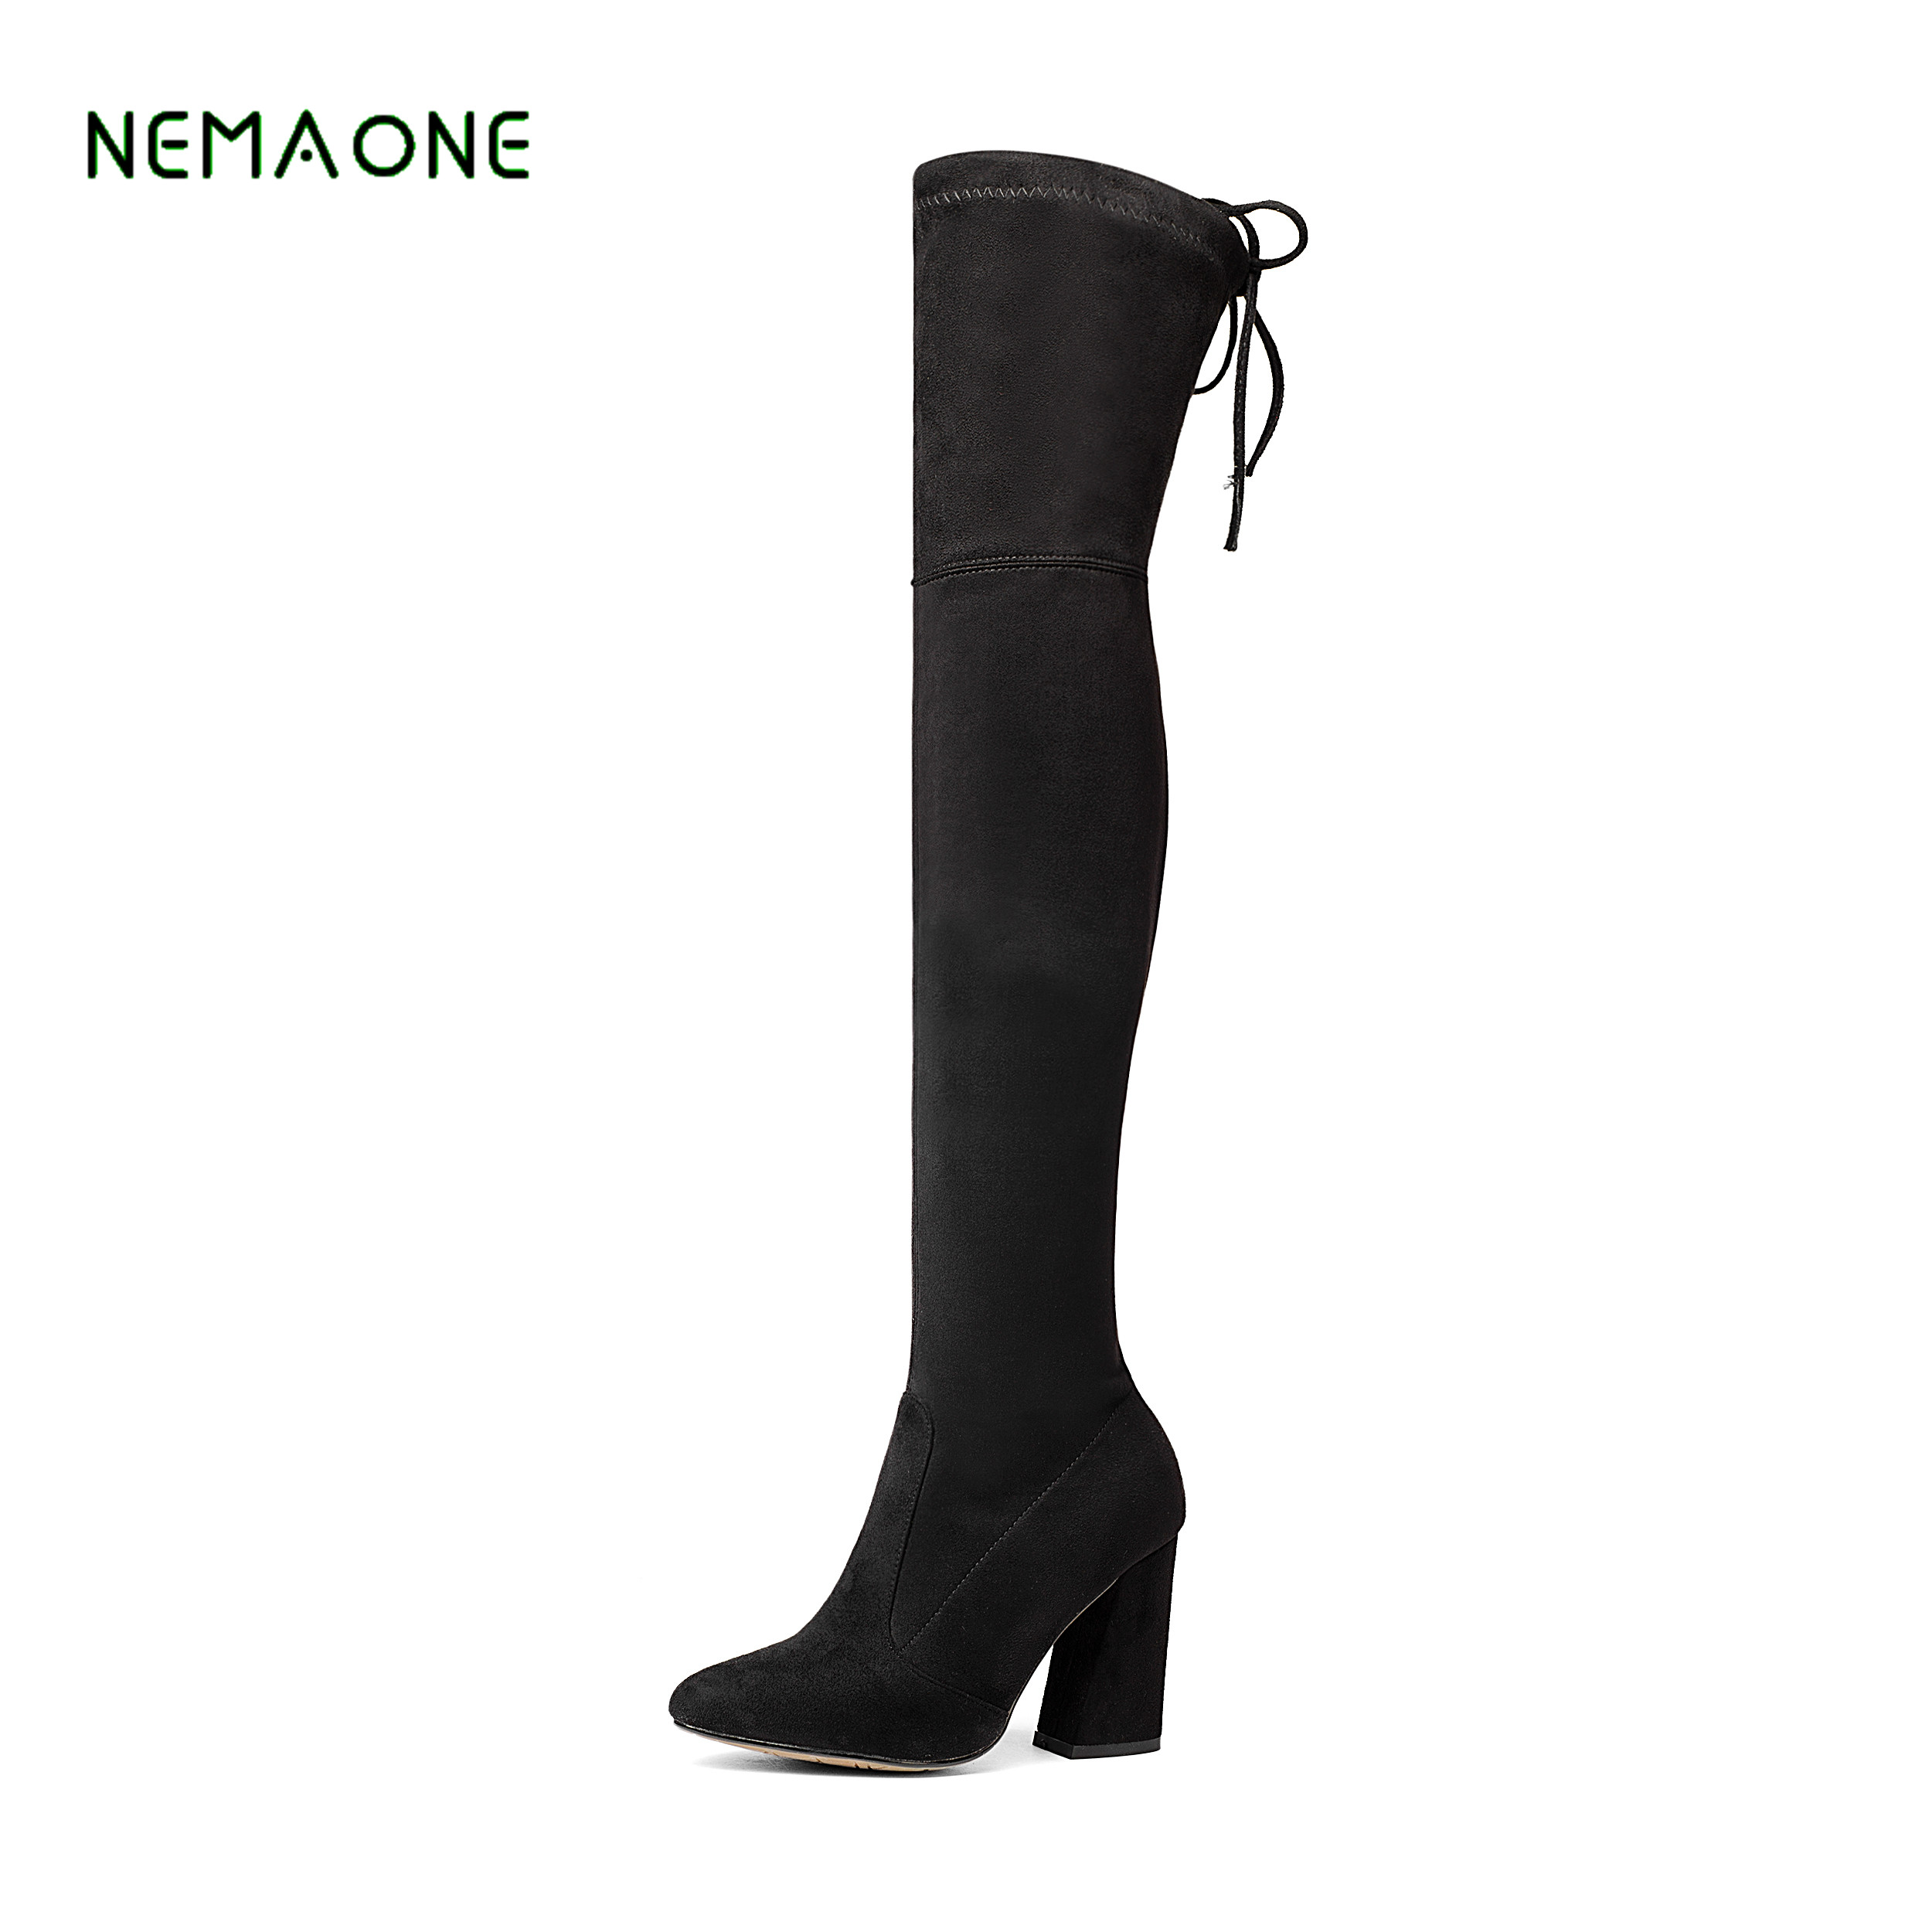 NEMAONE Women Stretch Suede Over the Knee Boots Thigh High Boots Sexy Fashion Plus Size High Heels Shoes Woman 2017 Black Brown купить недорого в Москве